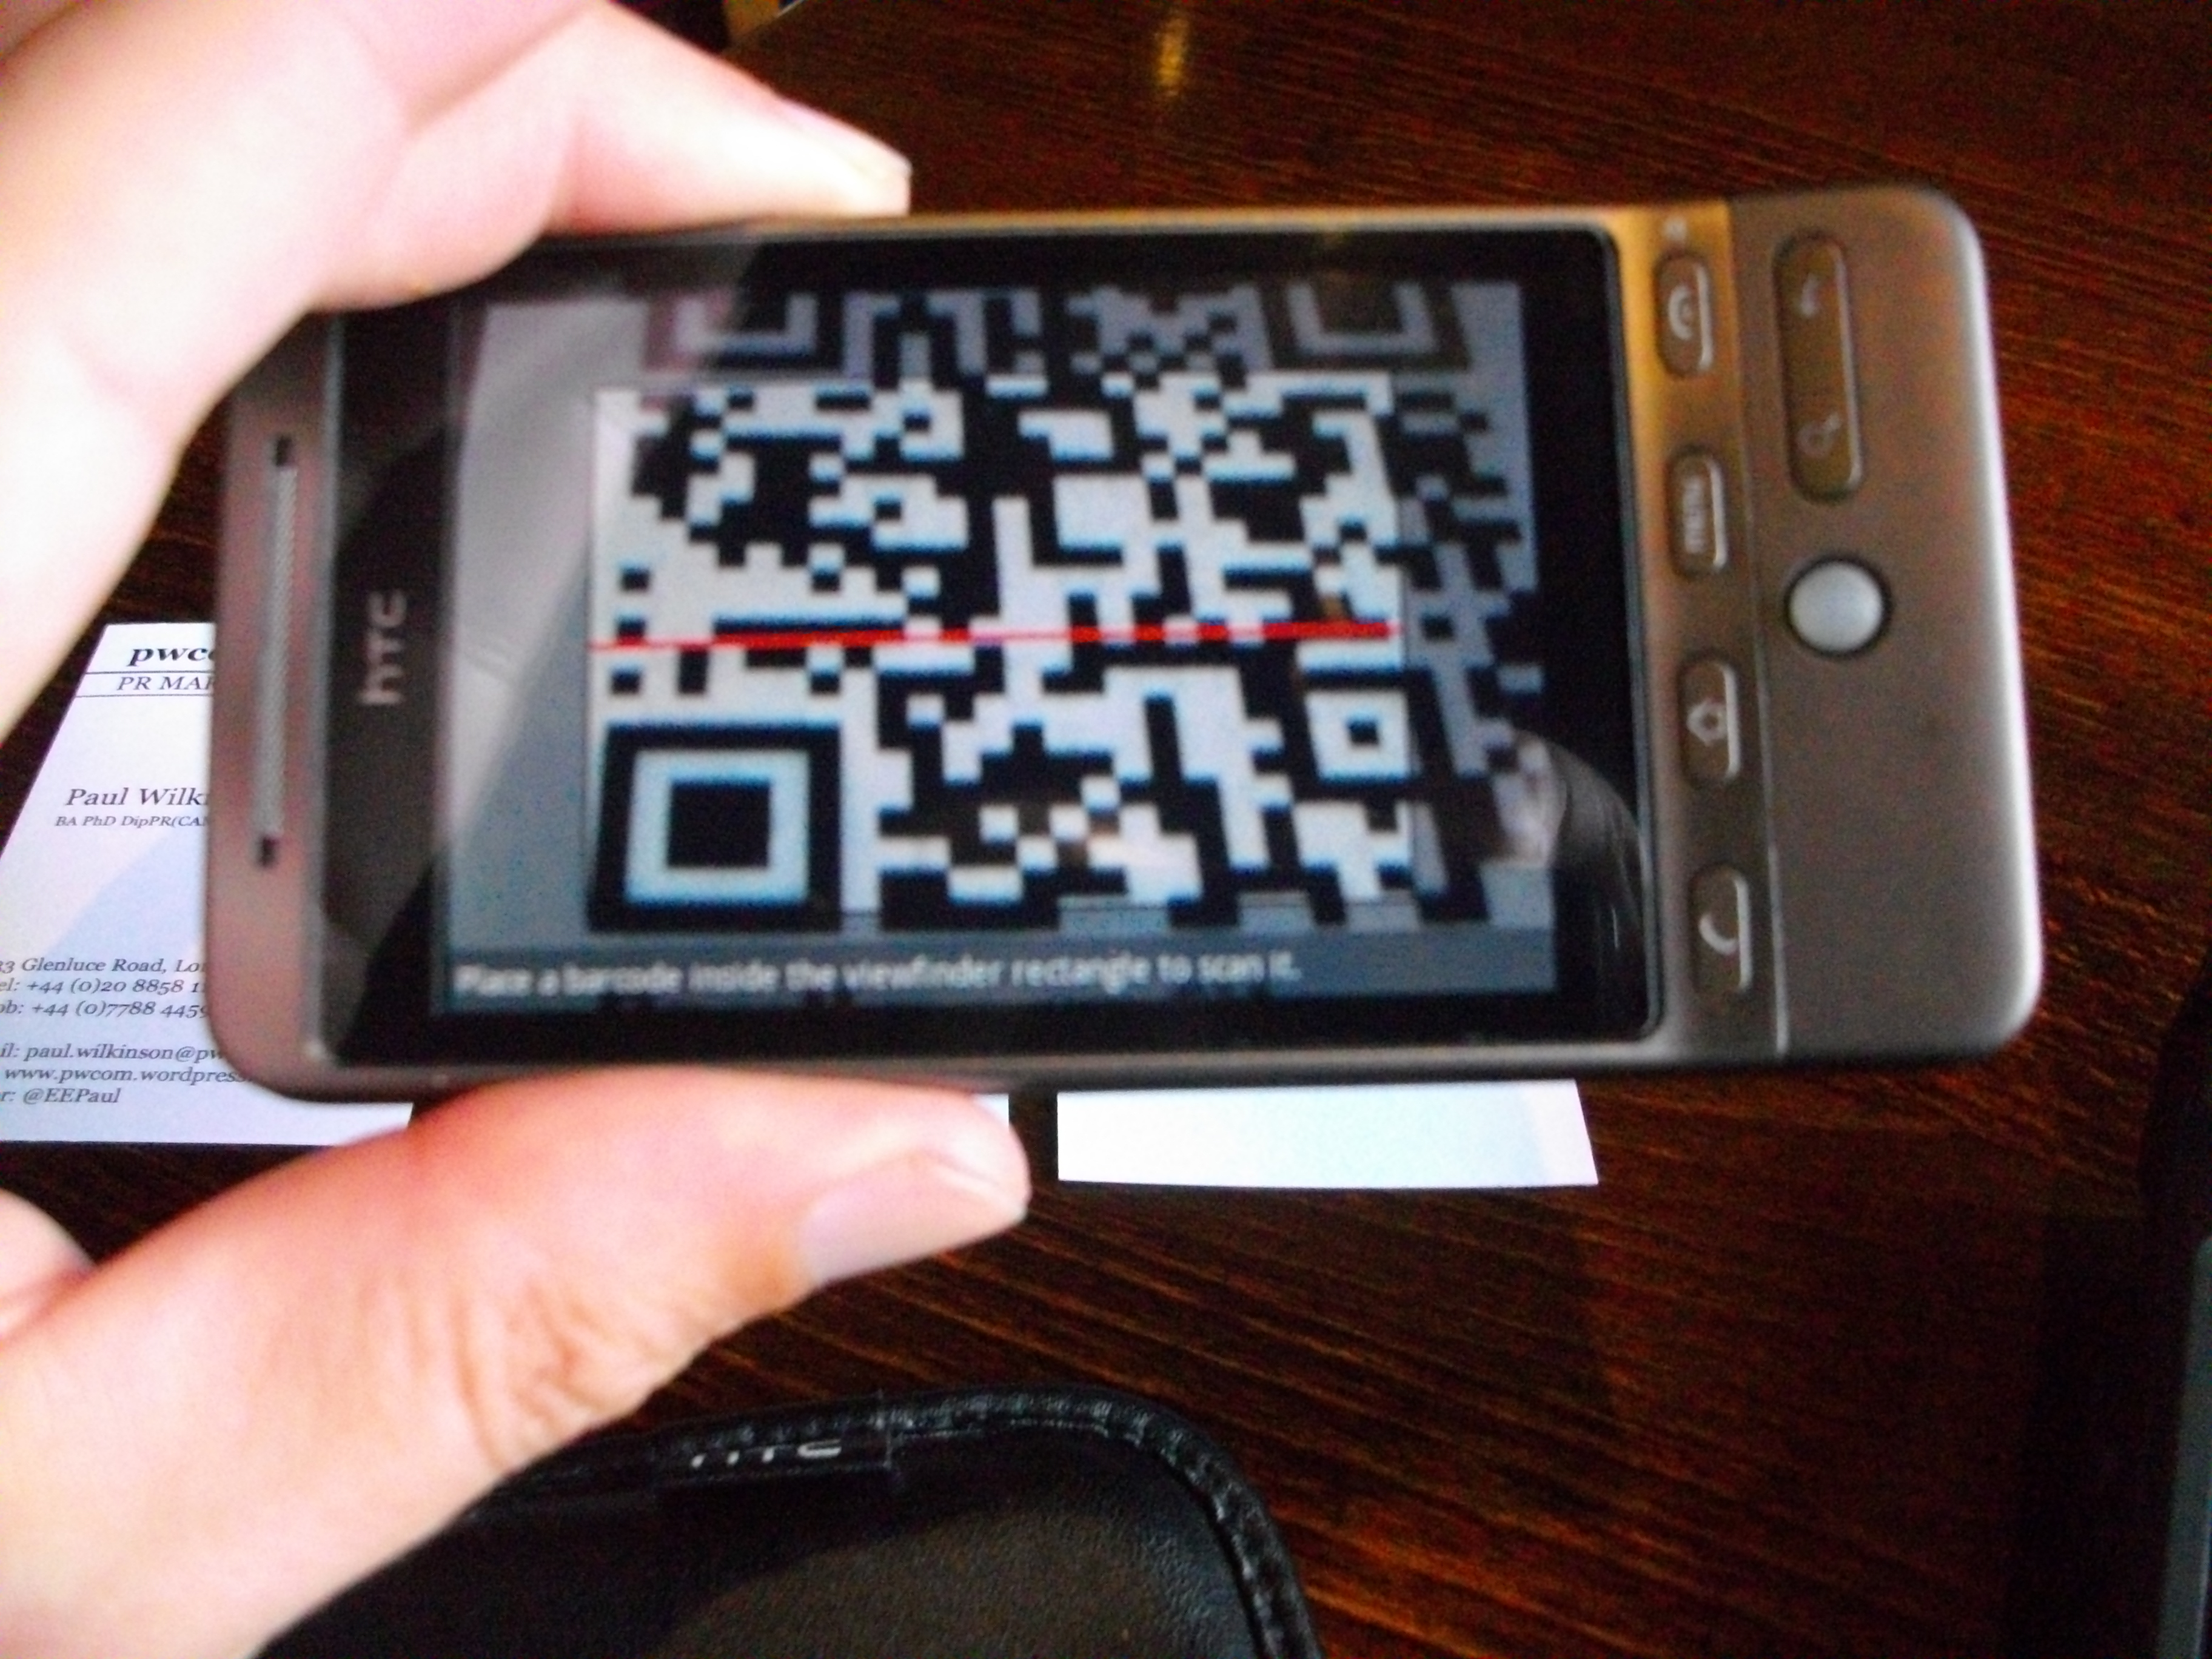 File:Scanning QR codes on business cards.jpg - Wikimedia Commons